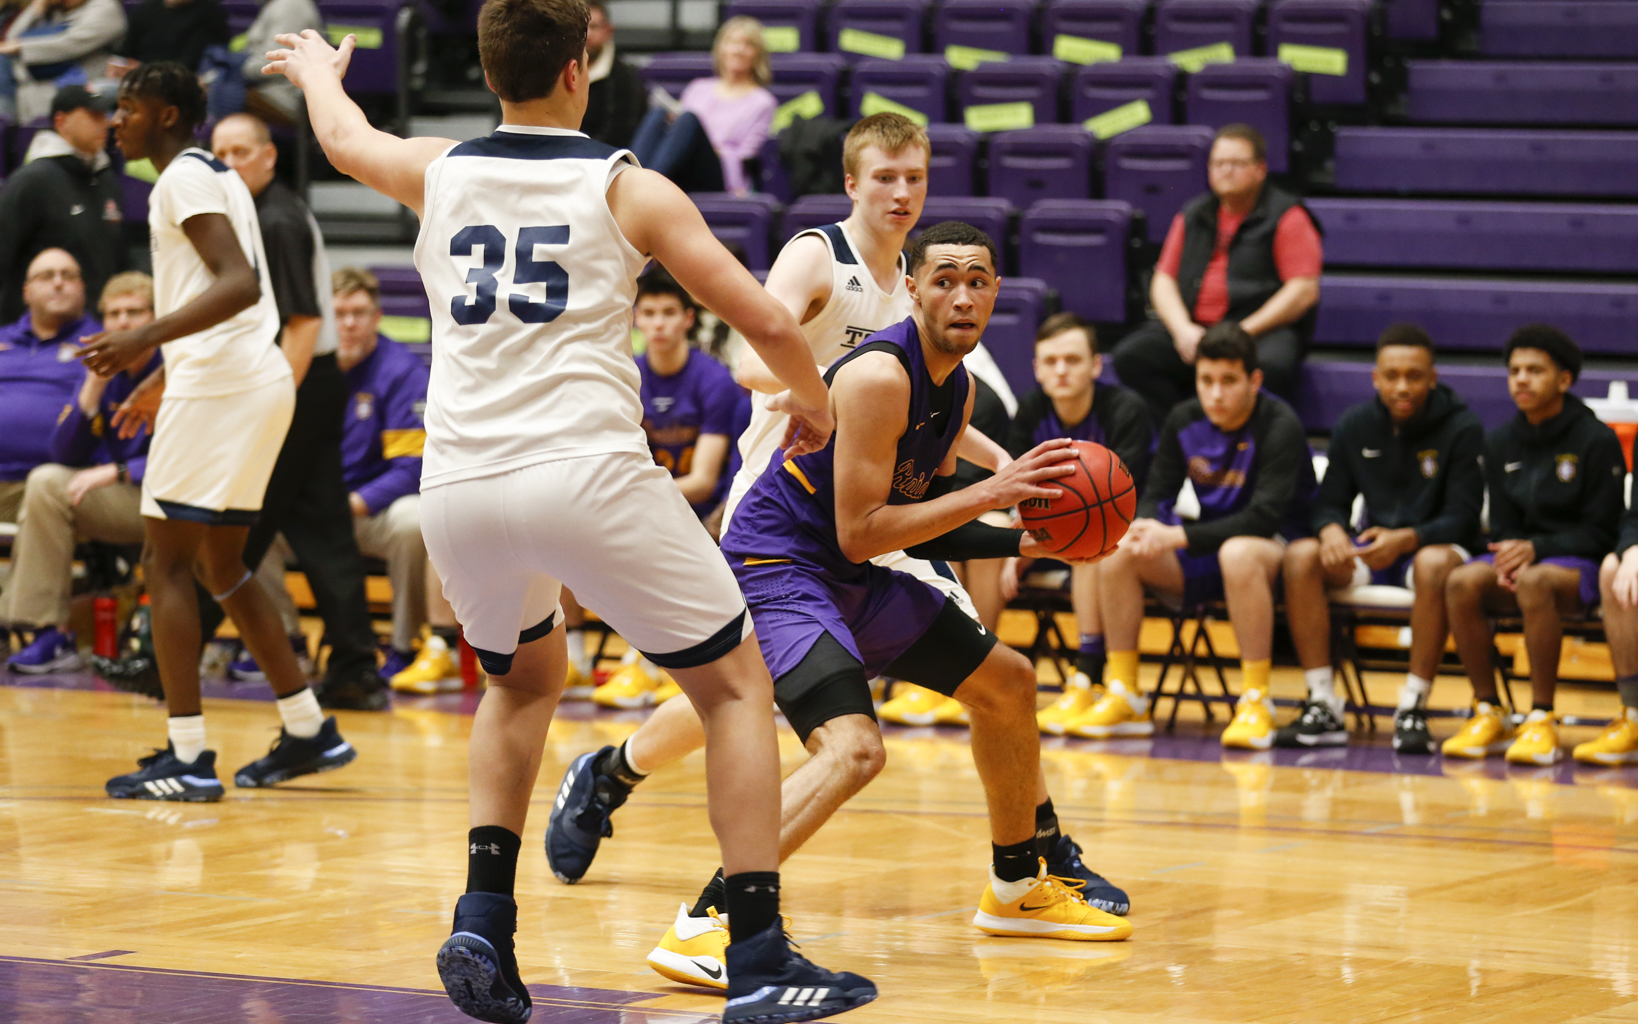 Cretin-Derham Hall's J'Vonne Hadley (2) looks for a passing lane against Totino-Grace Saturday night. Hadley had 23 points in the Raiders' 64-54 victory over the Eagles at the University of St. Thomas.  Photo by Jeff Lawler, SportsEngine